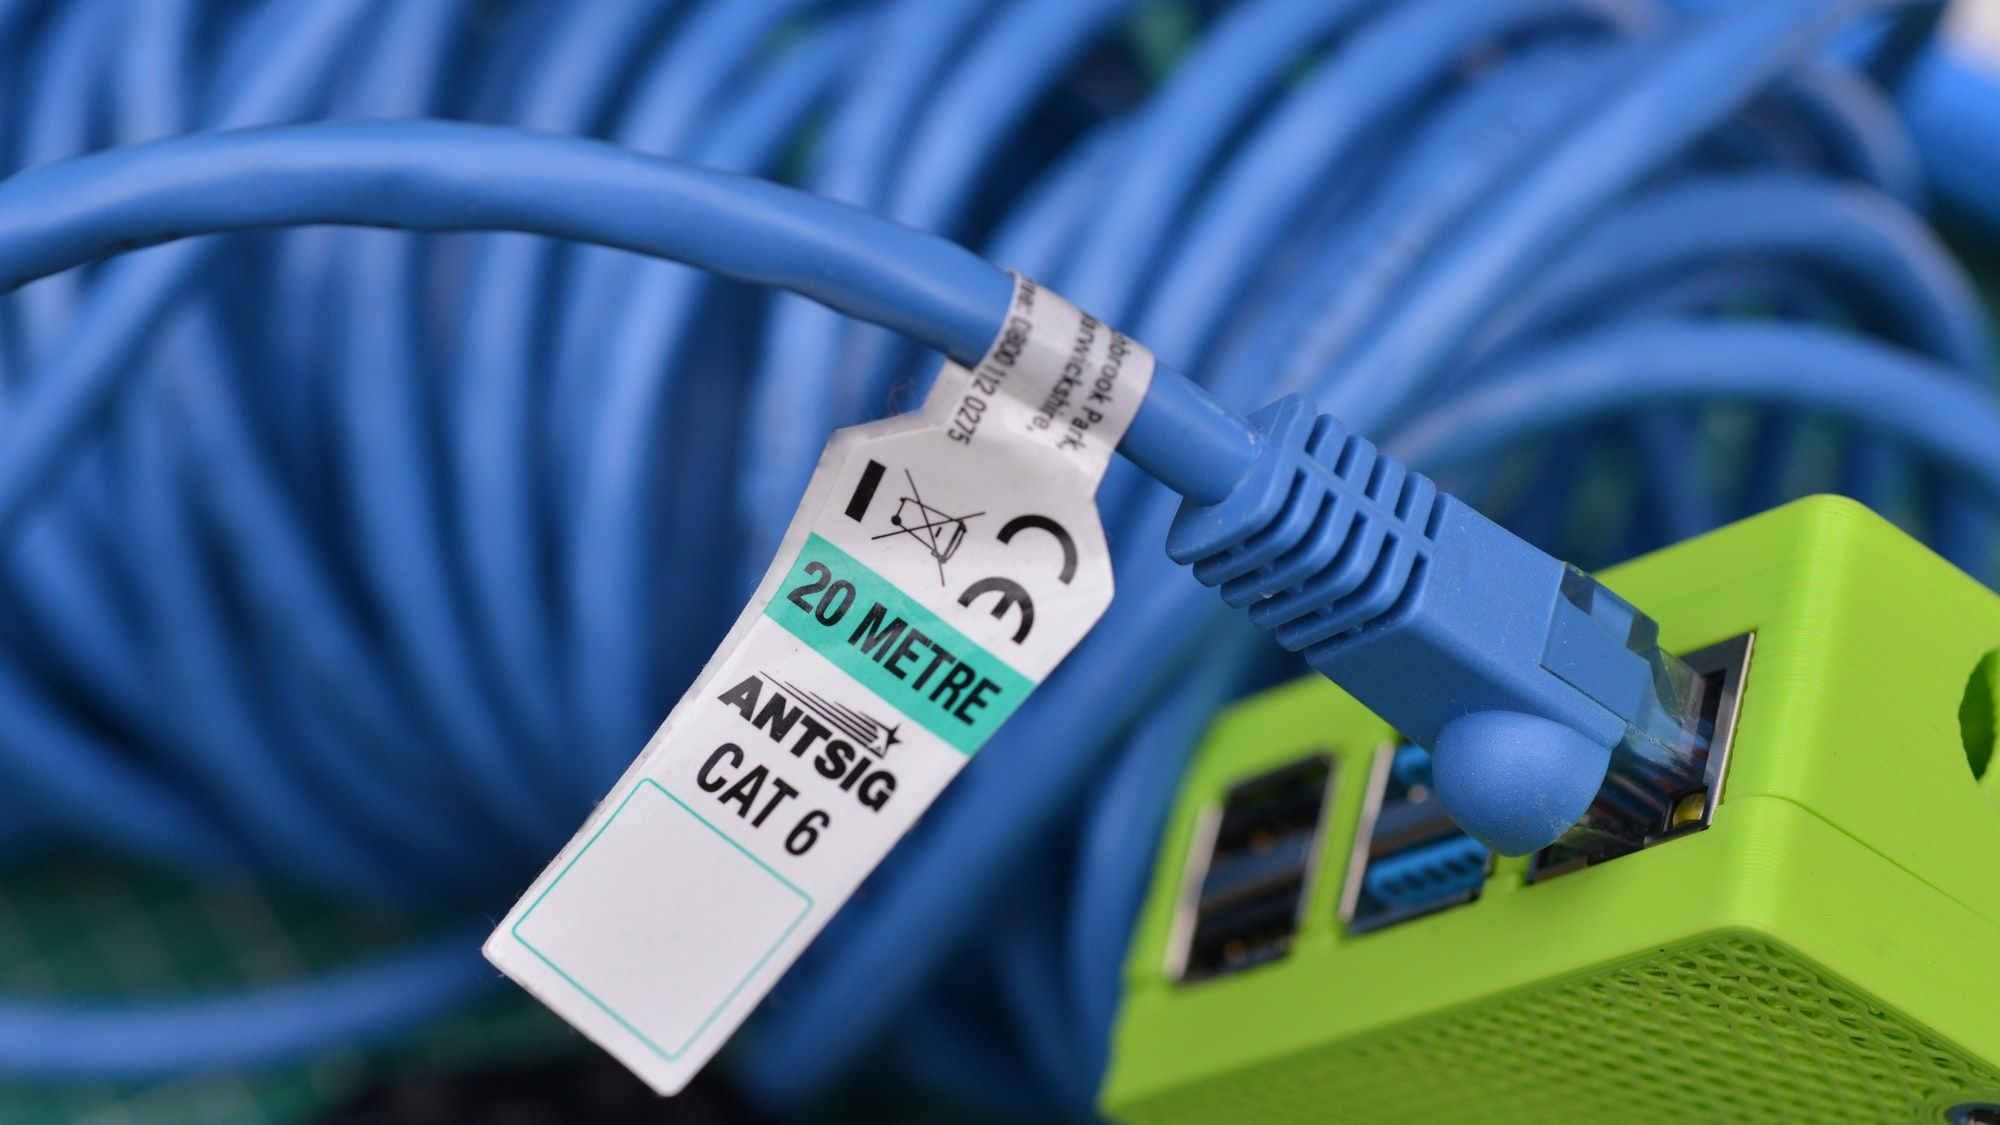 A bundle of blue CAT6 Ethernet cable plugged into a Raspberry Pi 4 housed in a bright green box.